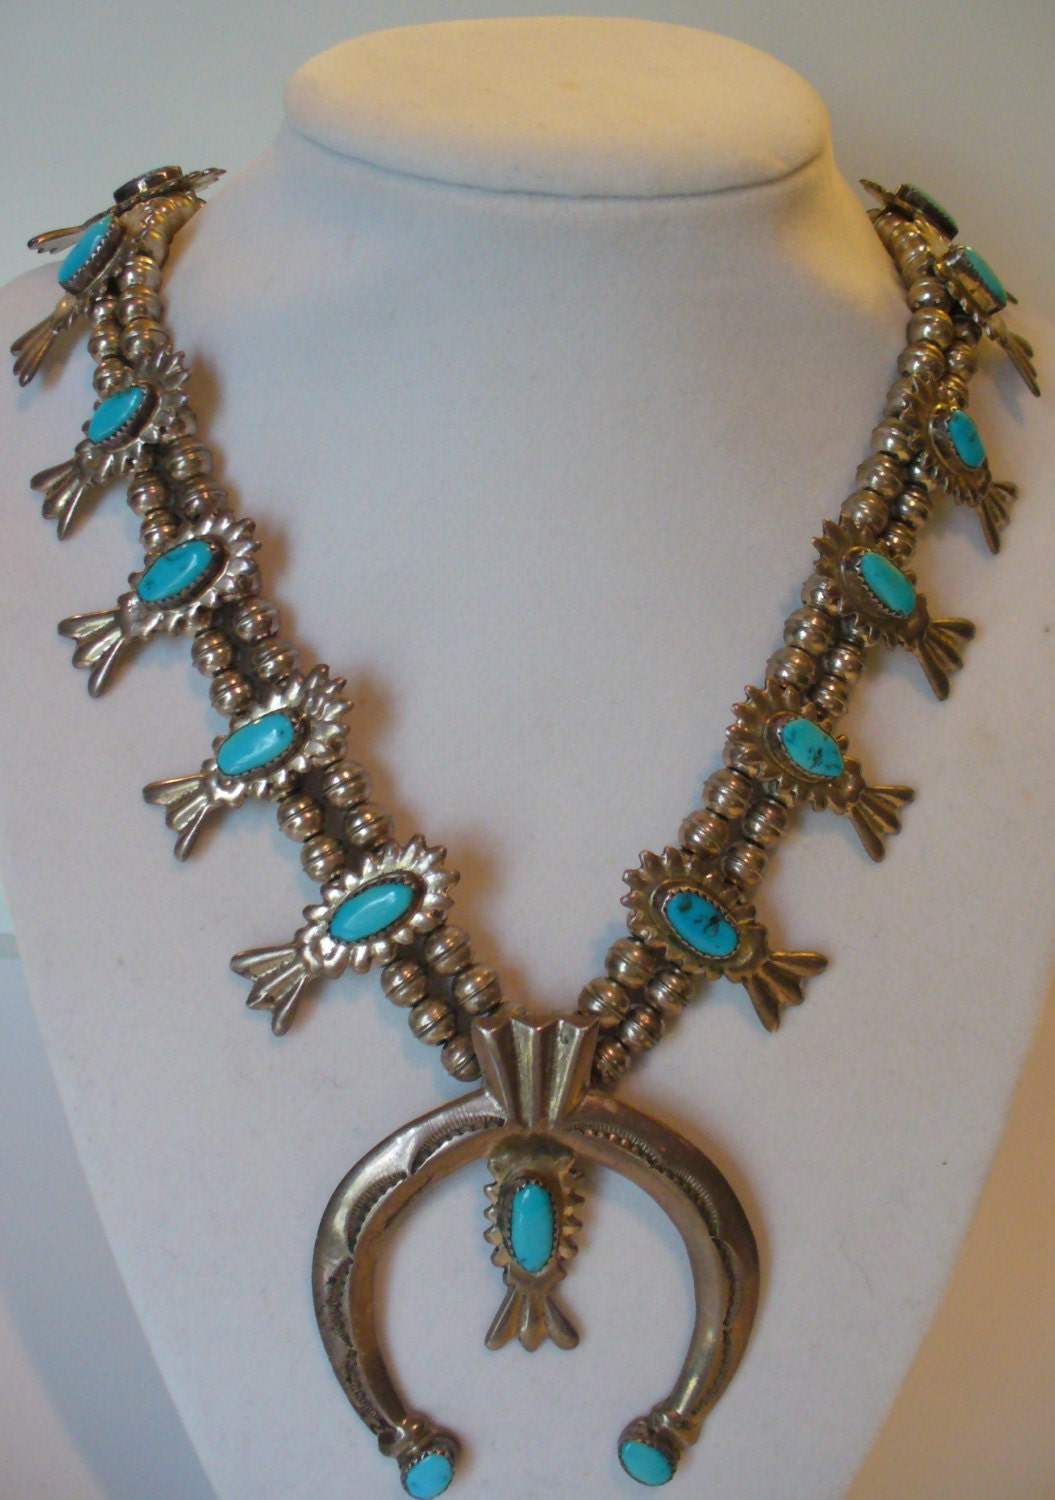 older native american squash blossom necklace with sandcast